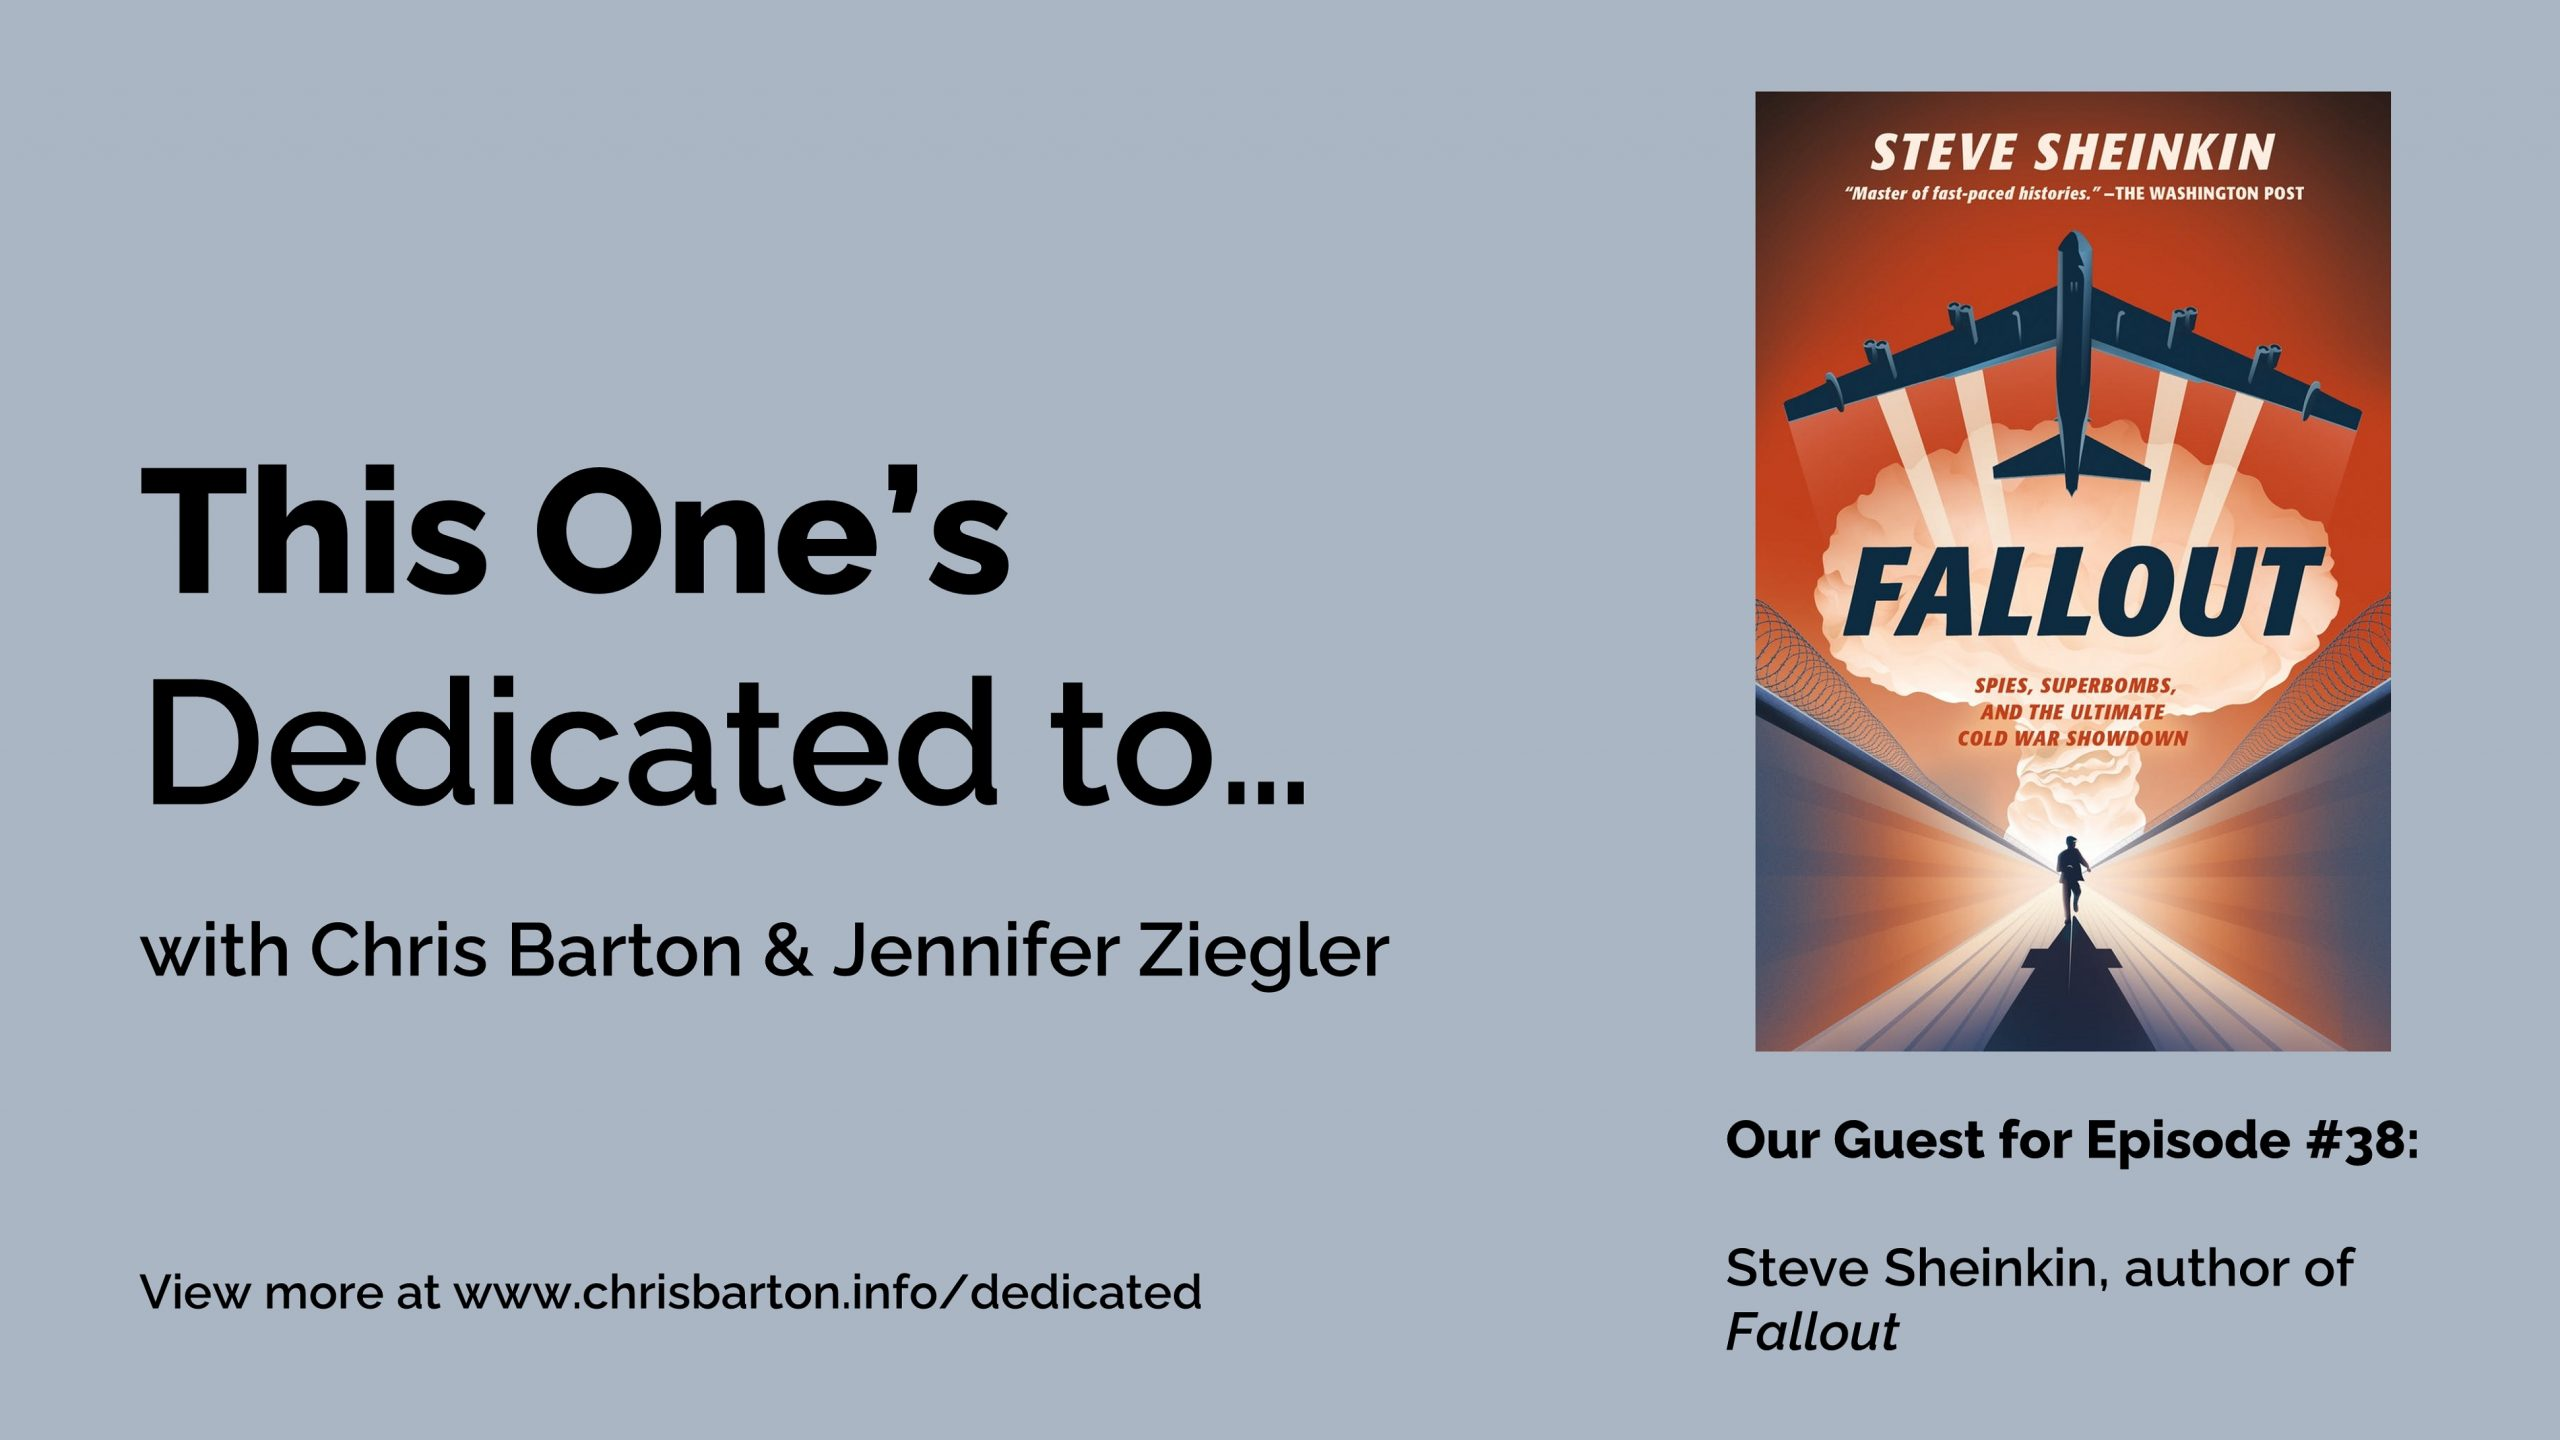 This One's Dedicated to… (#38): Steve Sheinkin, Fallout